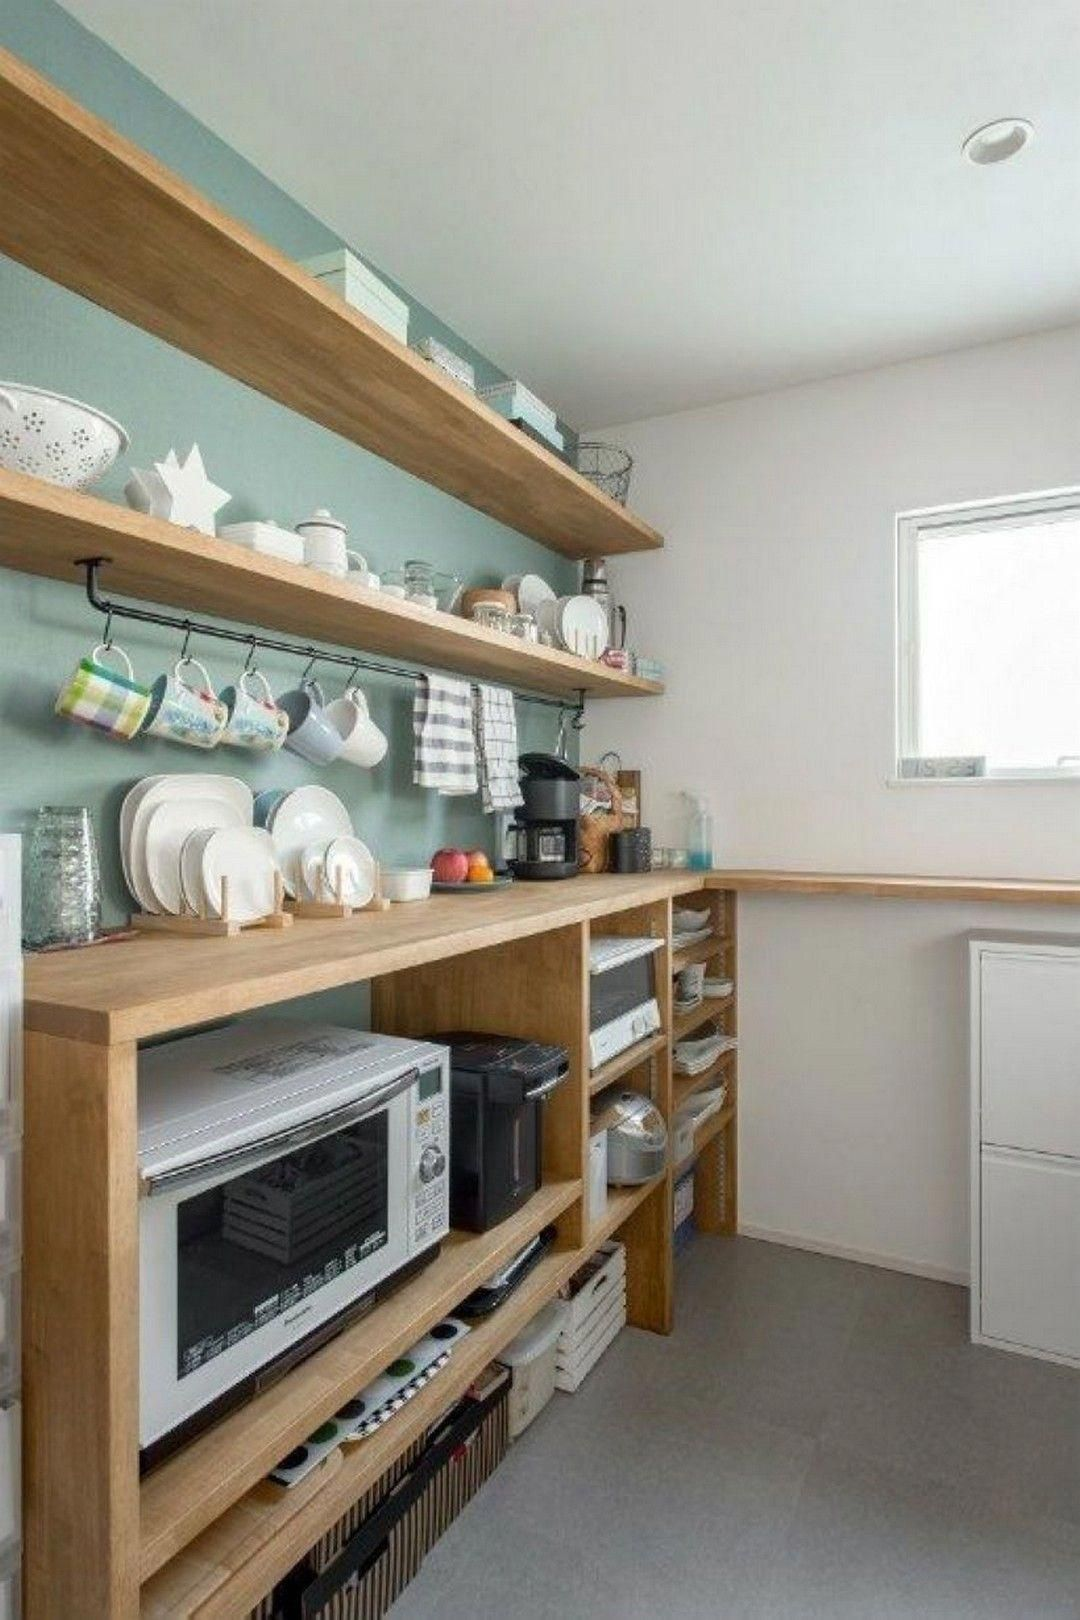 10x10 Kitchen Remodel: Consider This Important Picture In Order To Look Into The